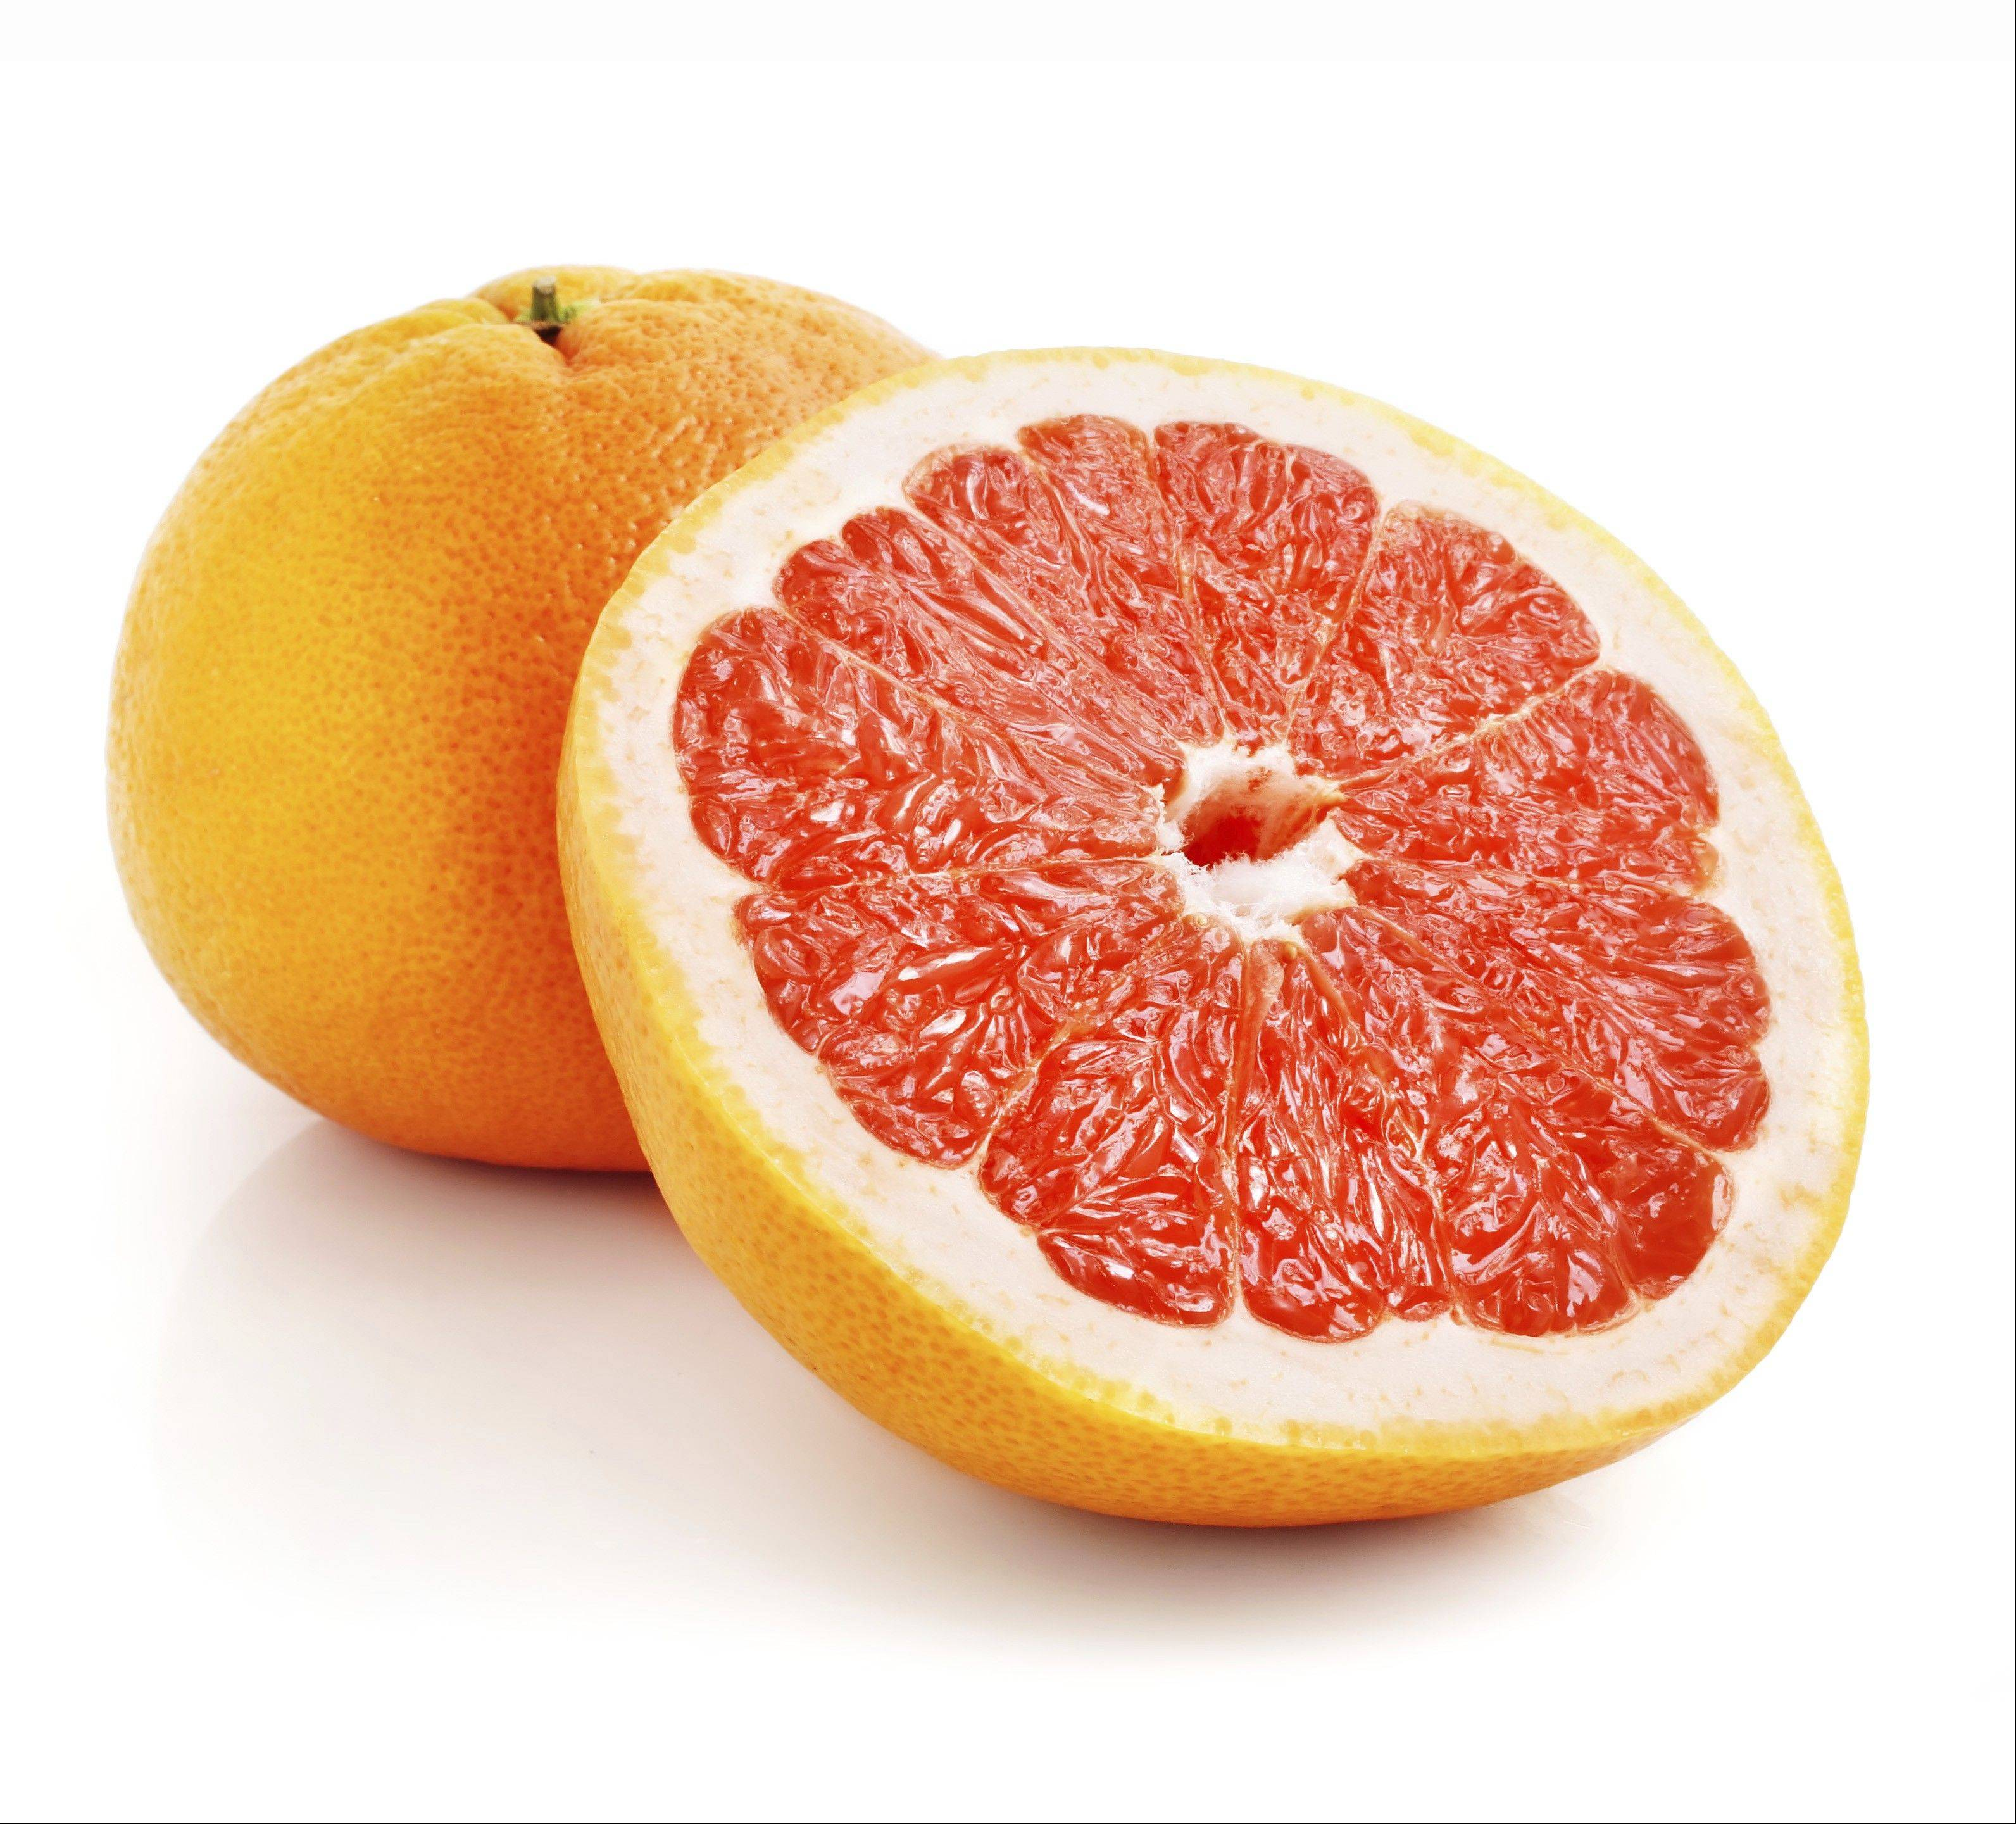 Scientists say the number of medications that react adversely with grapefruit has increased.